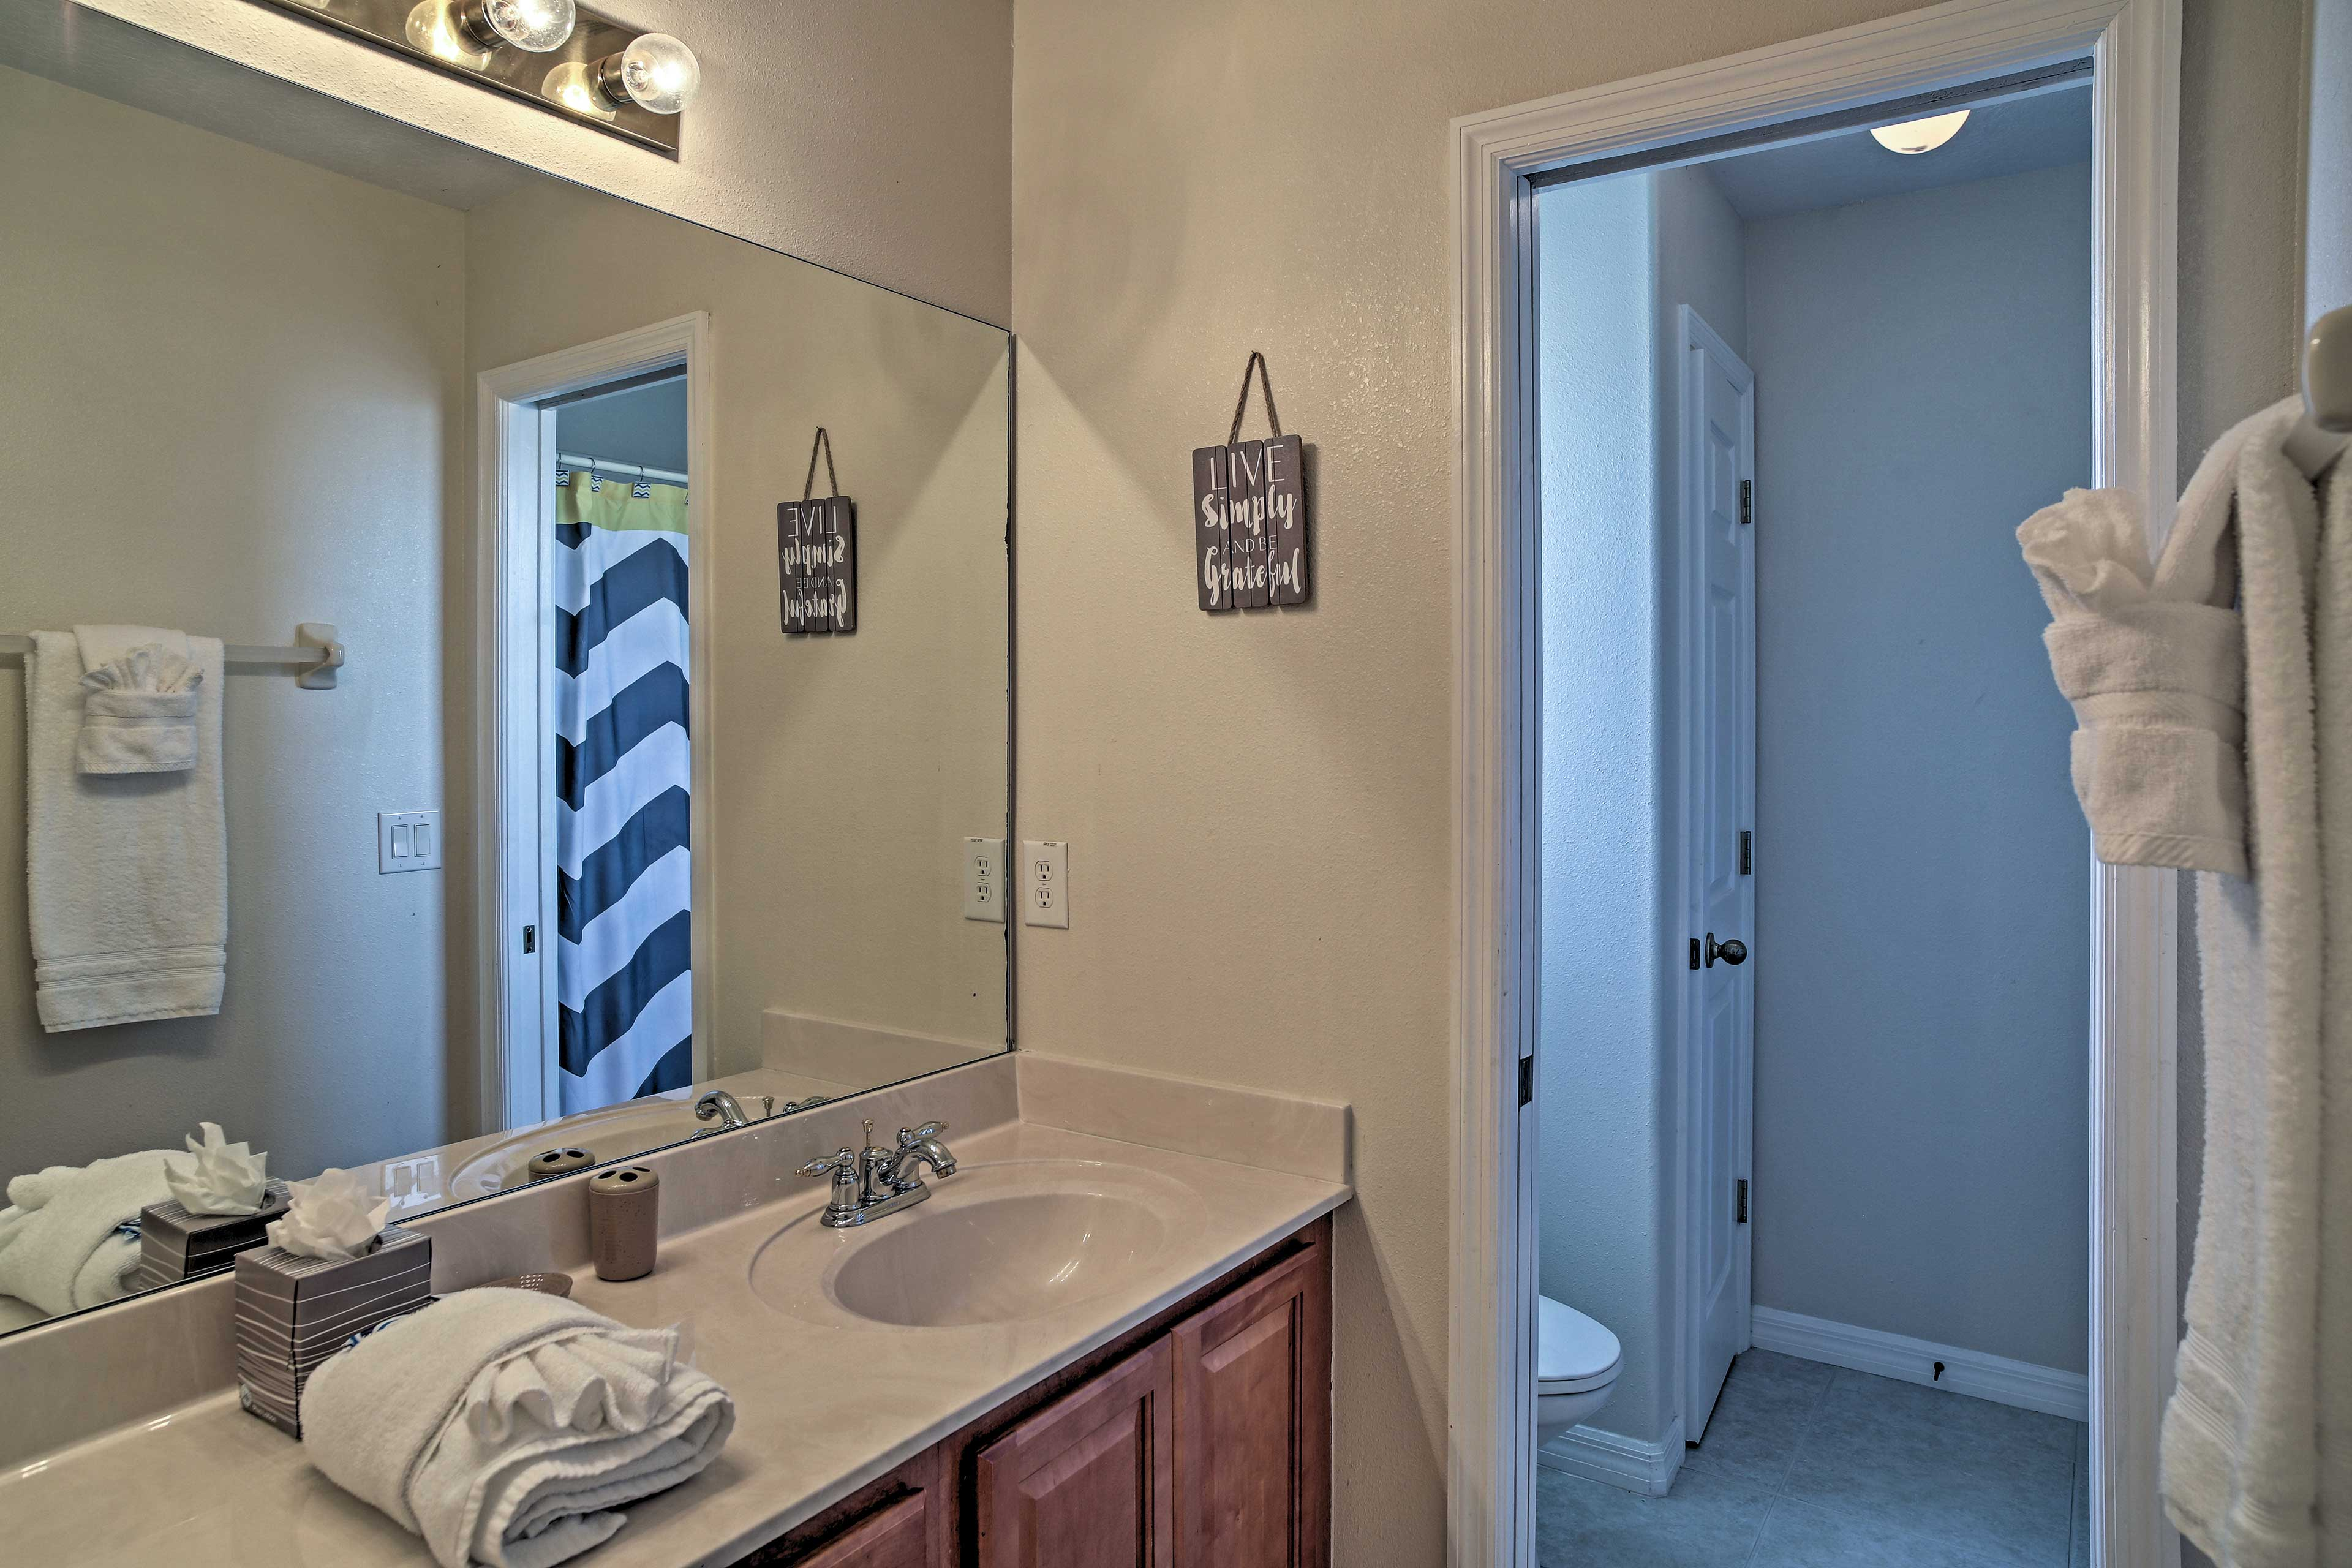 The second bathroom hosts a shower/tub combo.